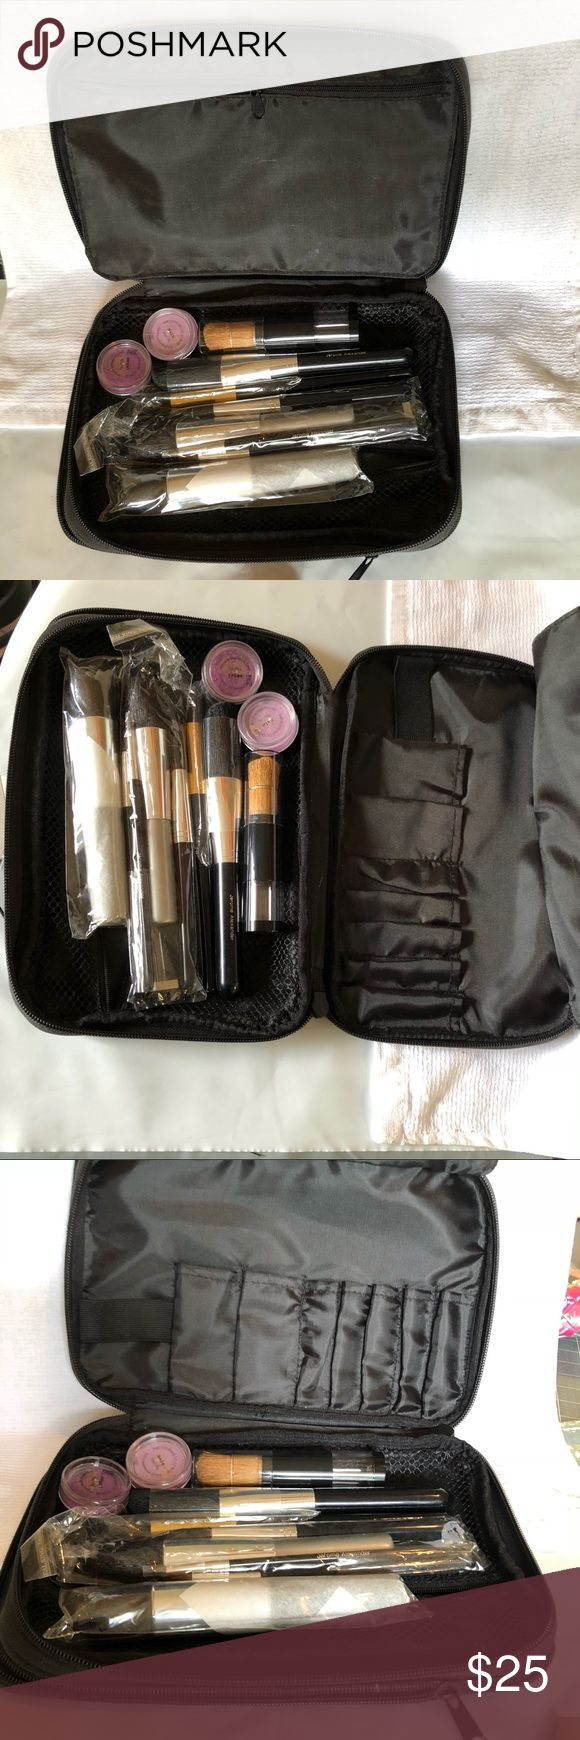 BARE MINERALS BRUSH / EYE SHADOW SET Brand new unused makeup and brushes in an expandable organizer with separate zipper pockets and brush storage Bare Minerals Makeup